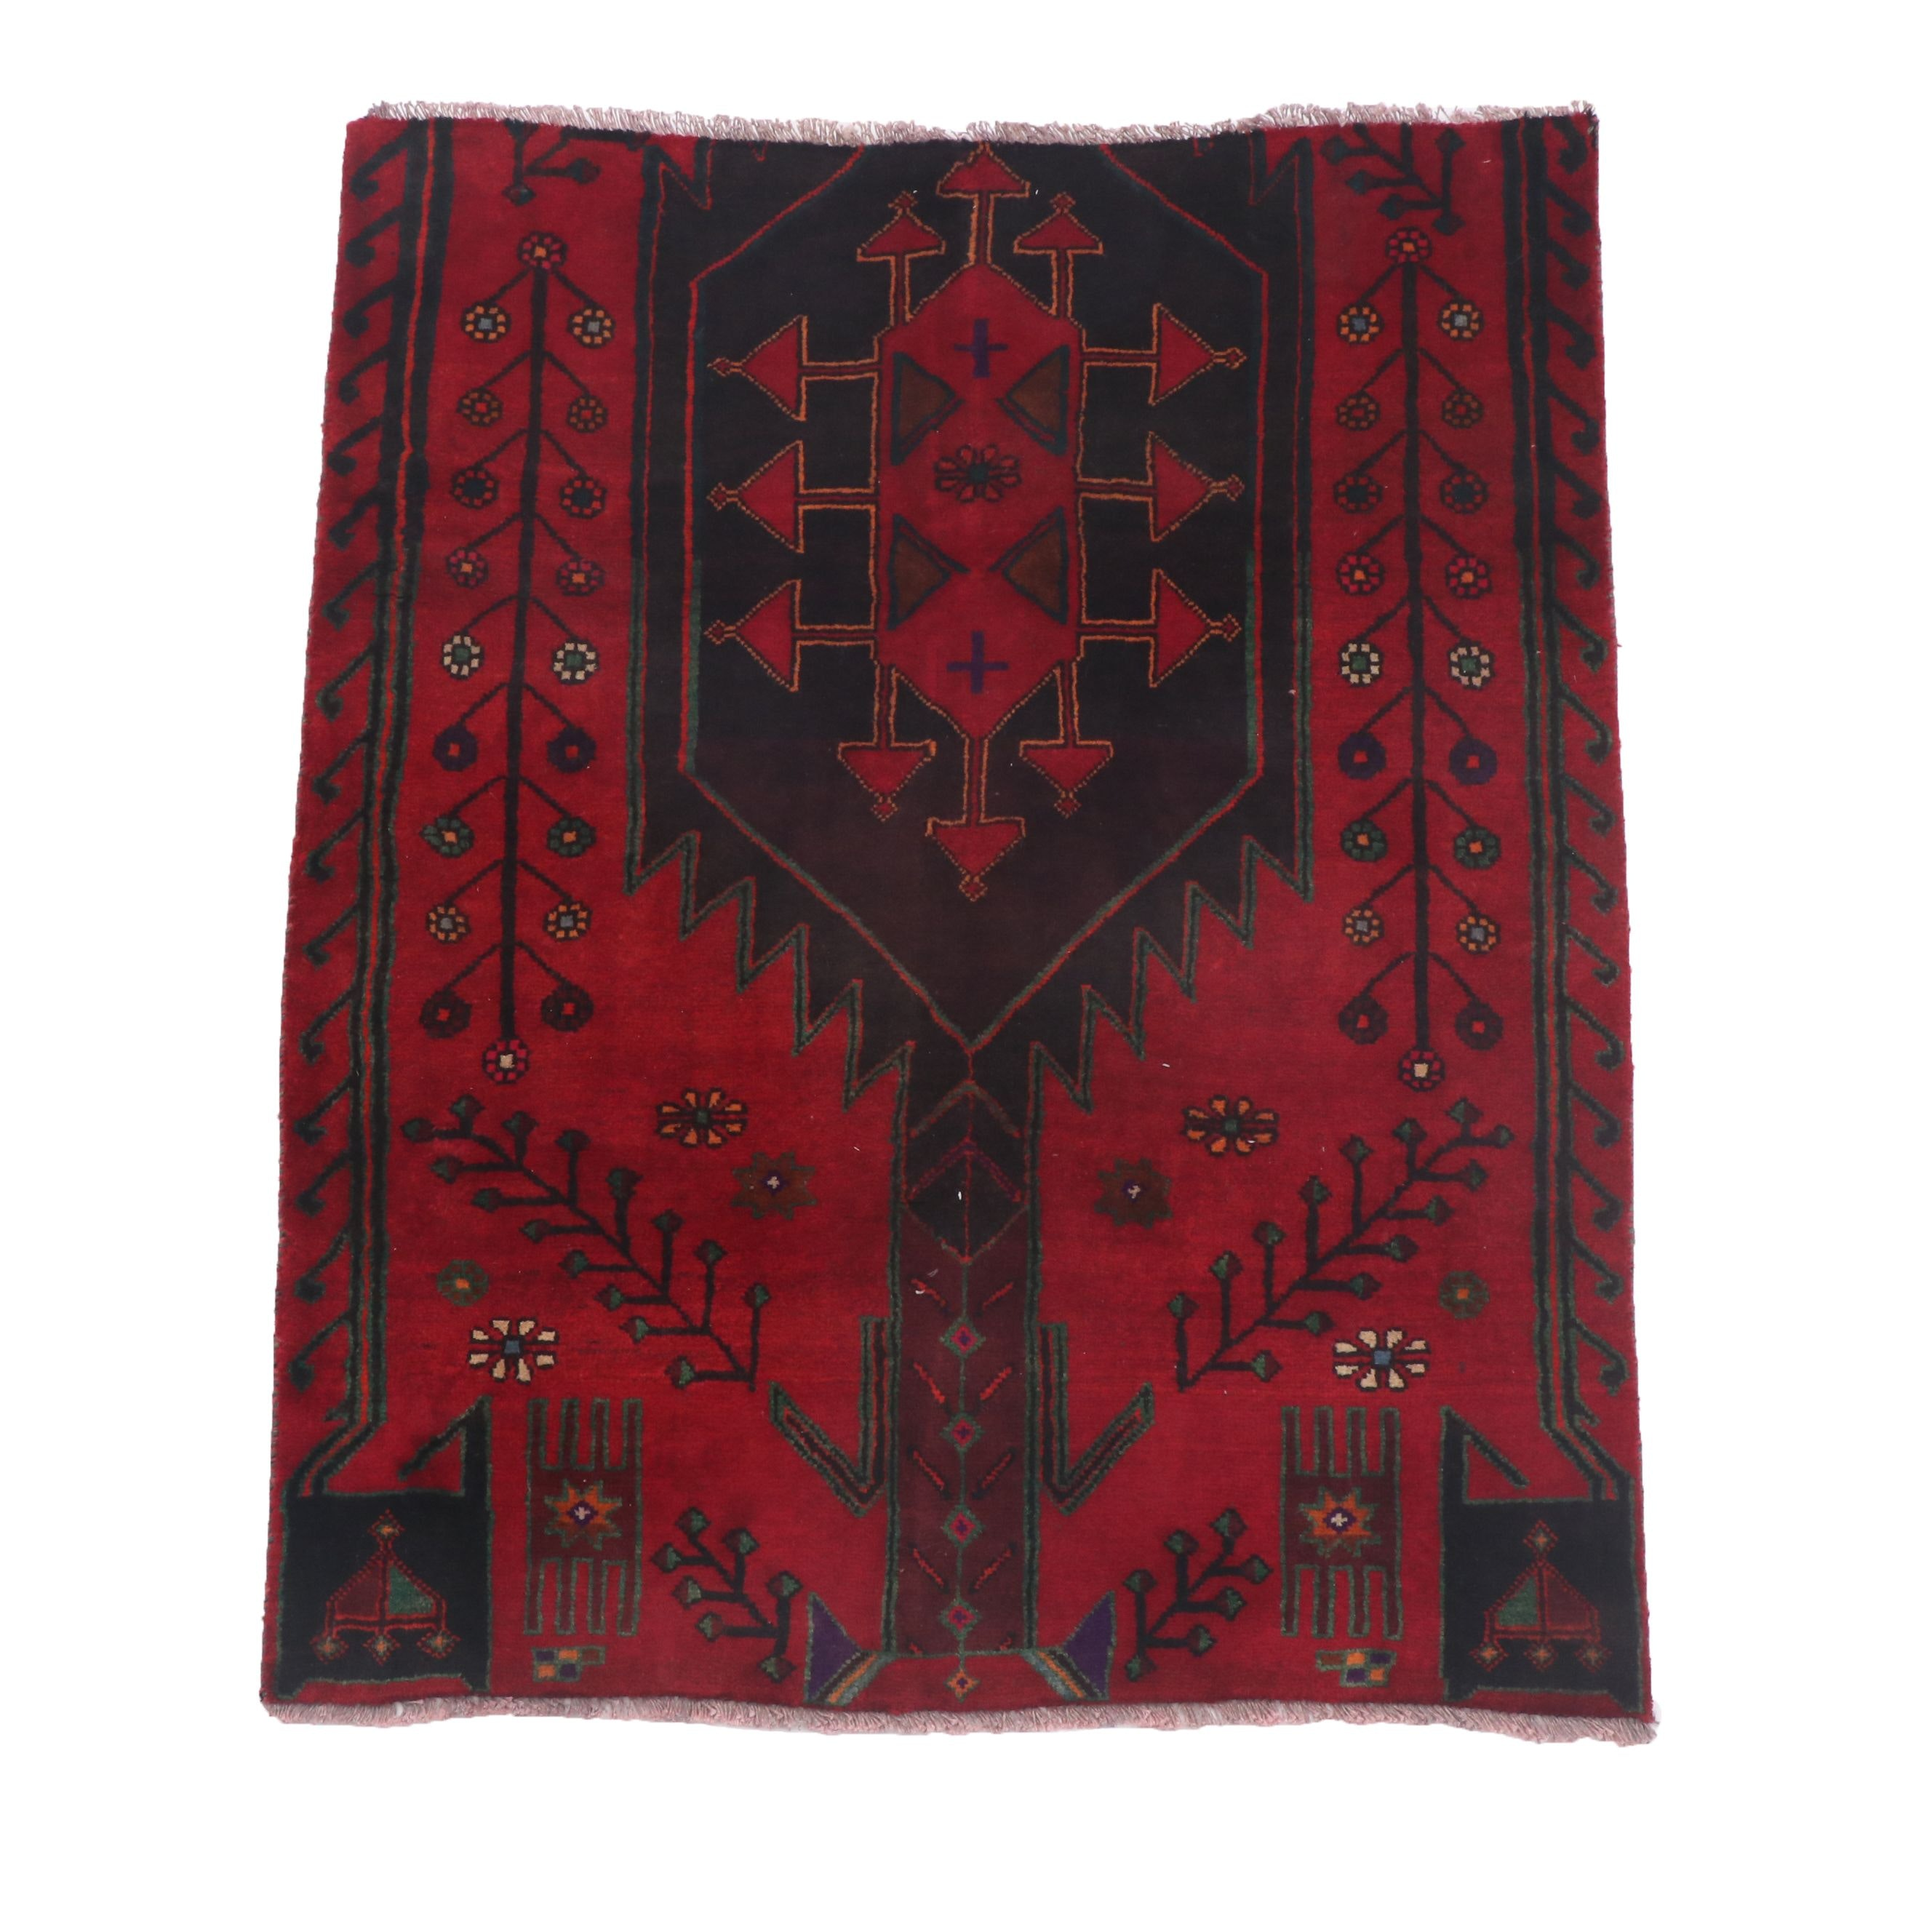 Hand-Knotted Kurdish Wool Rug Fragment